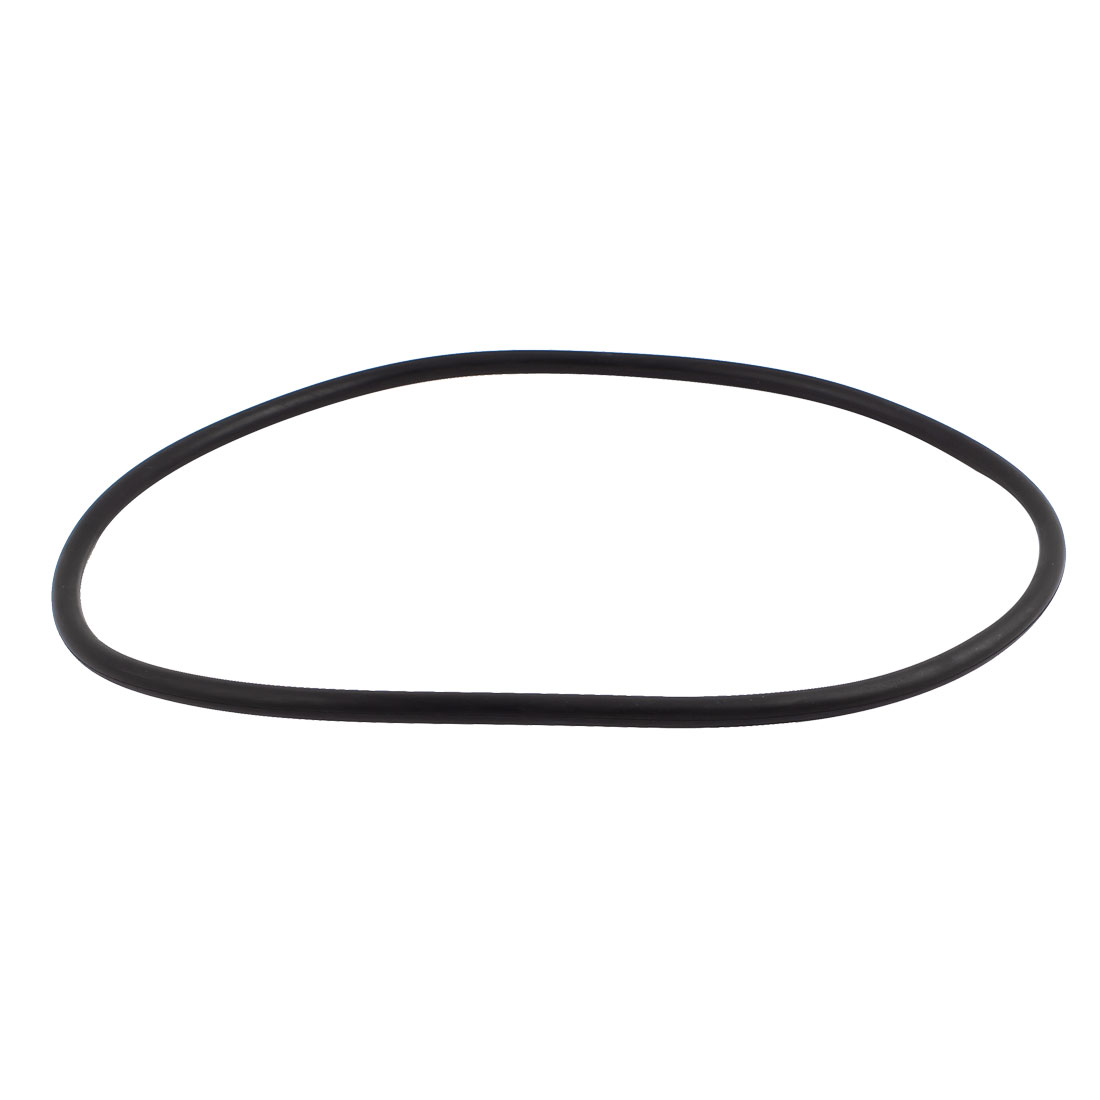 Black Universal O-Ring 275mm x 8.6mm BUNA-N Material Oil Seal Washers Grommets